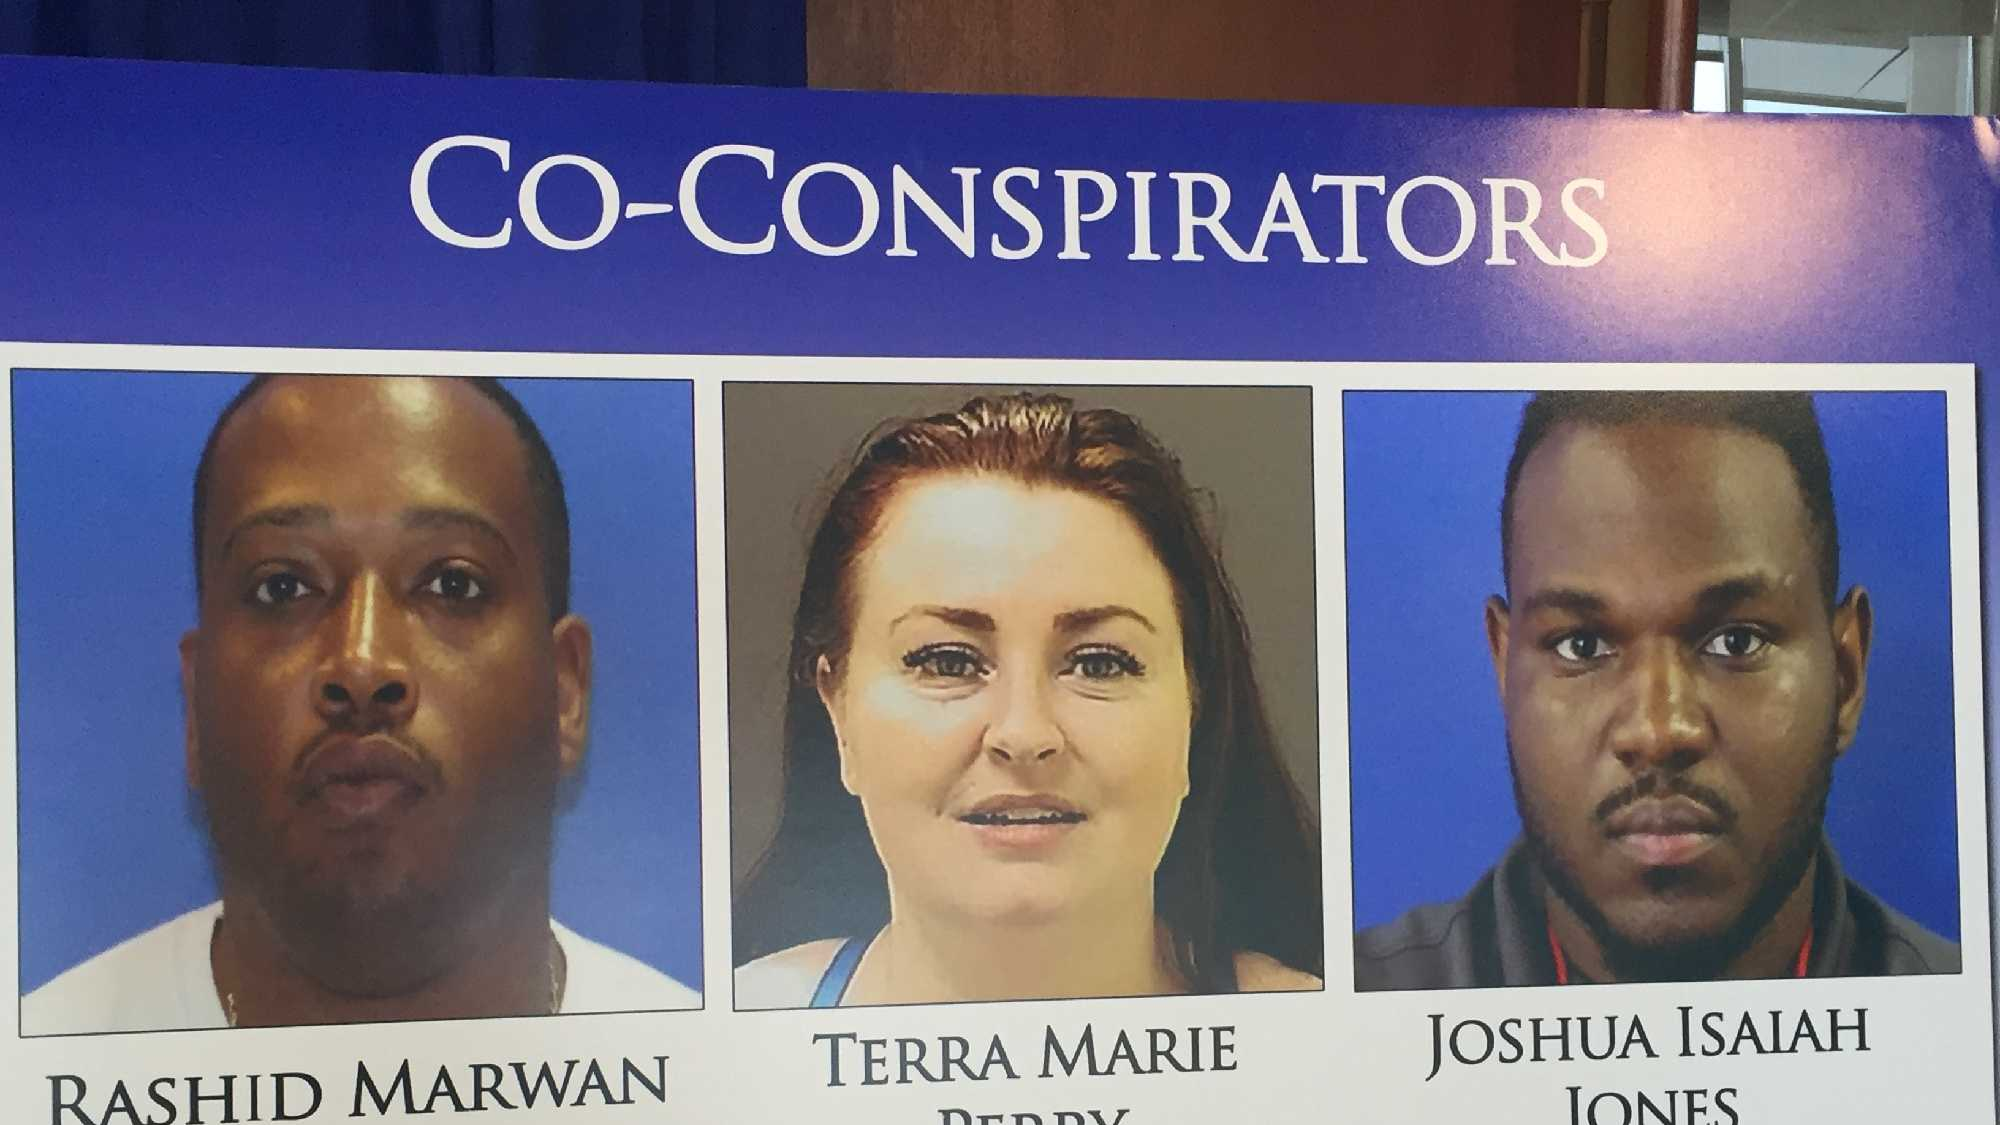 Three members of a multi-jurisdictional Maryland-based human trafficking enterprise have been indicted by a grand jury, officials said Tuesday.